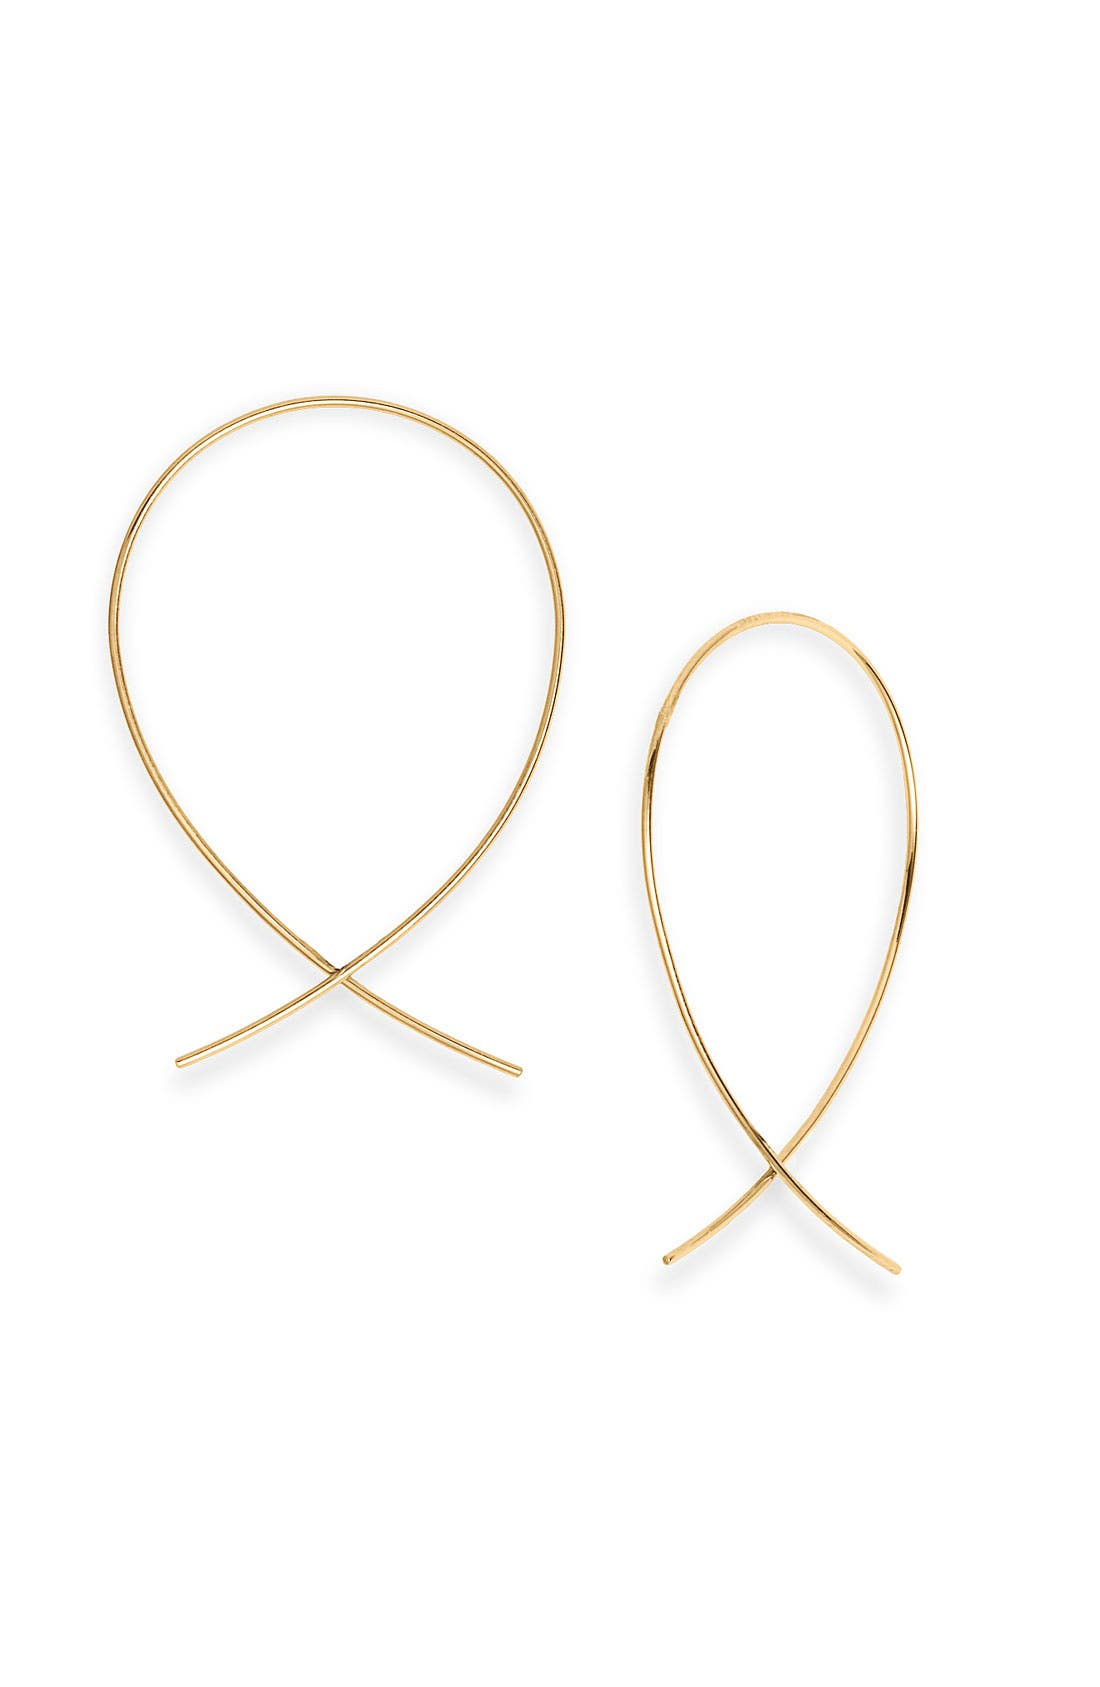 Lana Jewelry 'Upside Down' Small Hoop Earrings